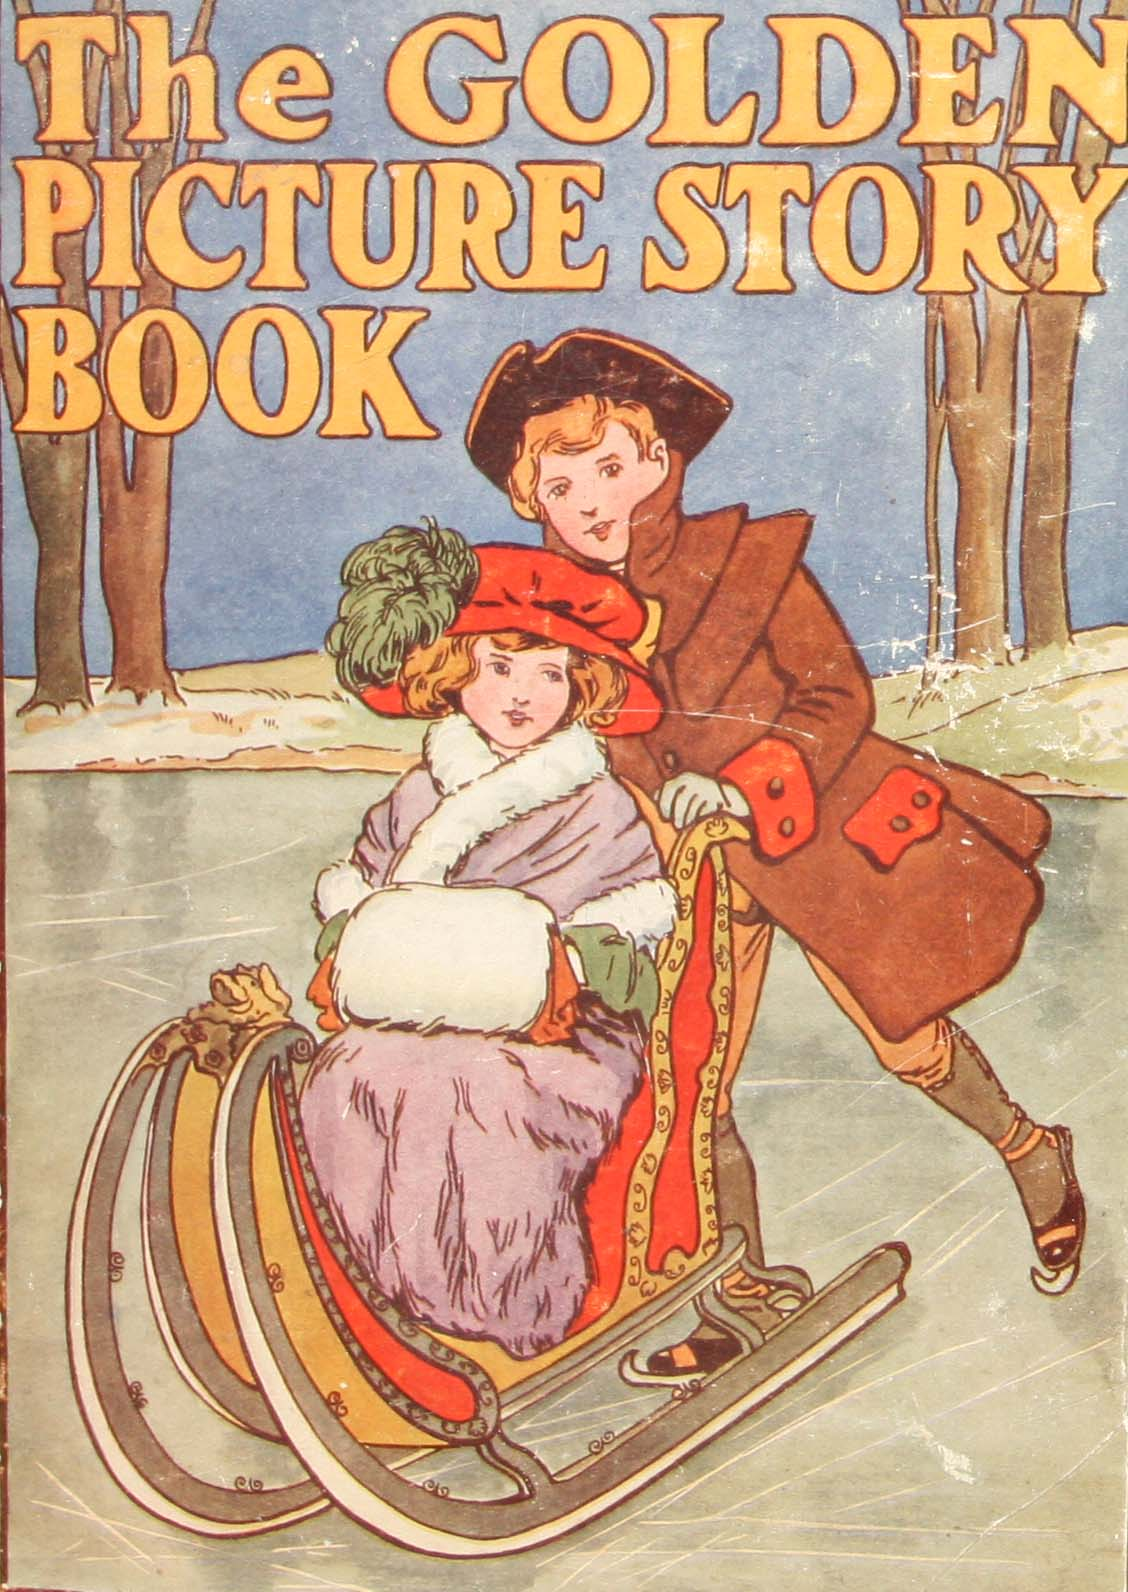 Golden picture story book